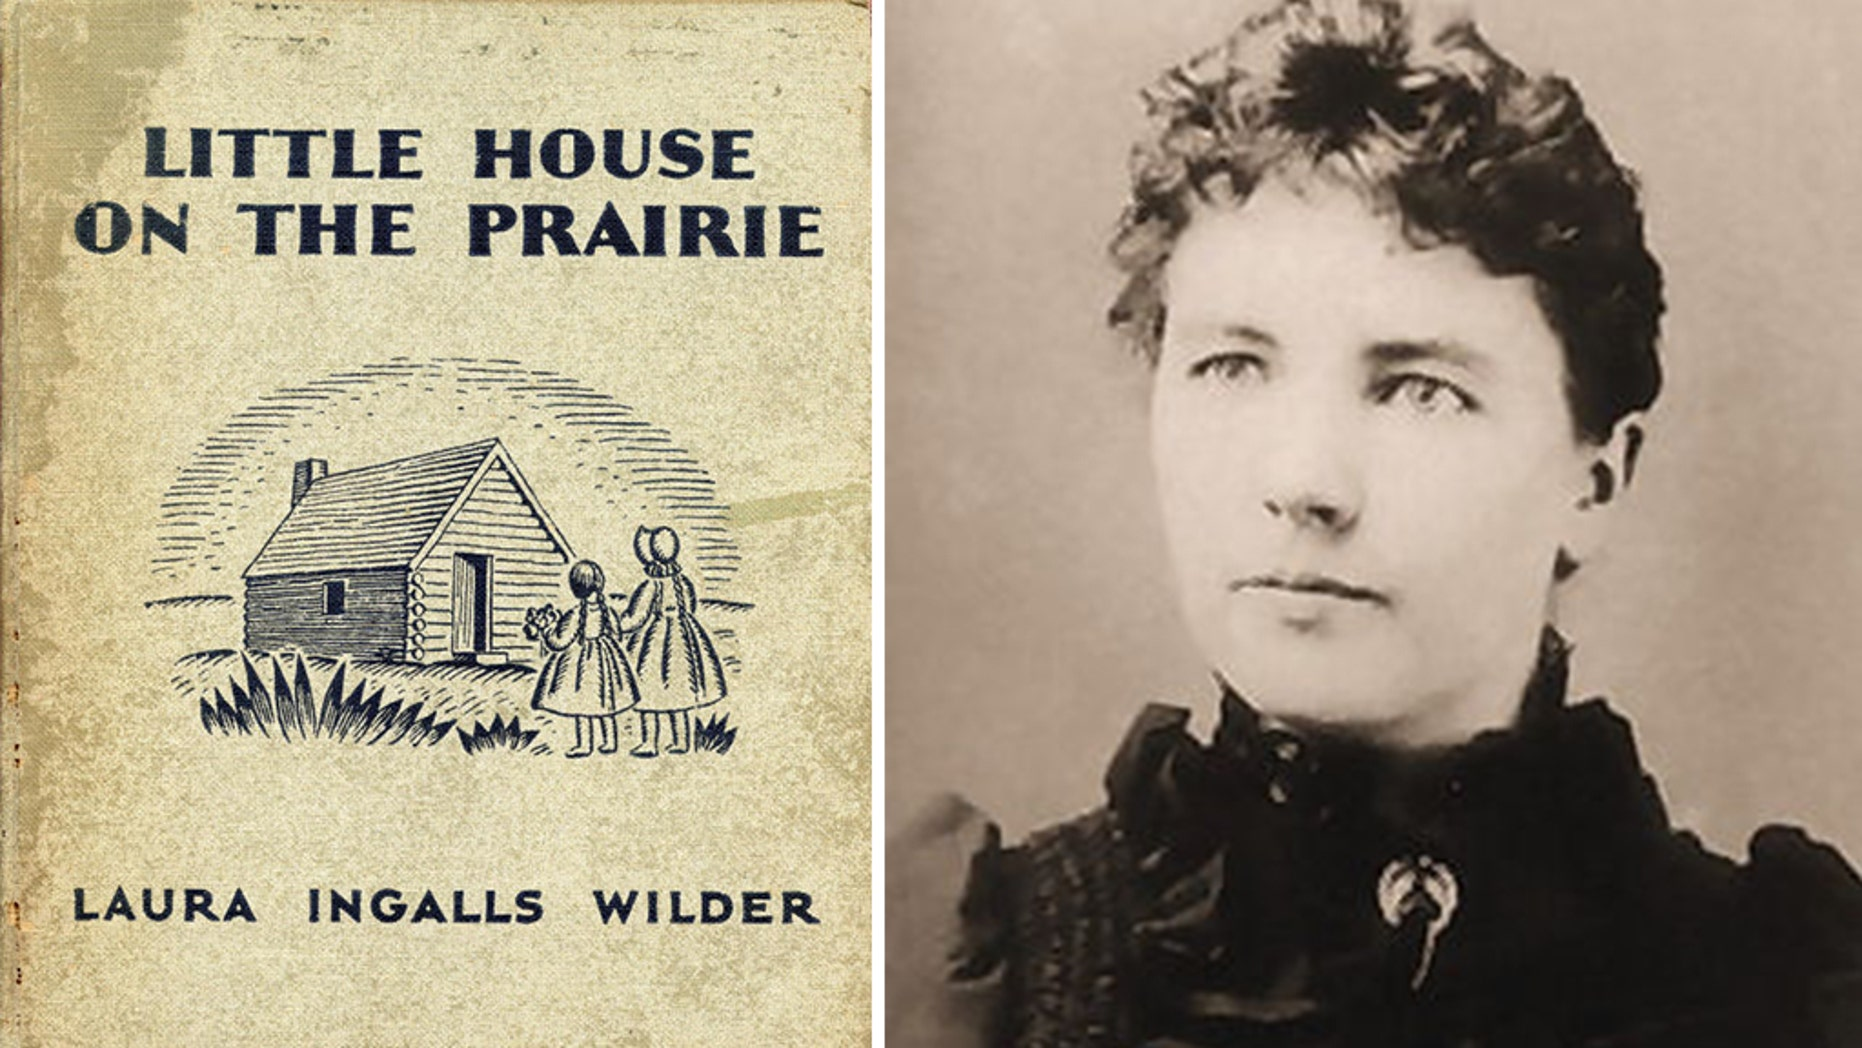 A division of the American Library Association has voted to remove Laura Ingalls Wilder's name from a major children's book award.